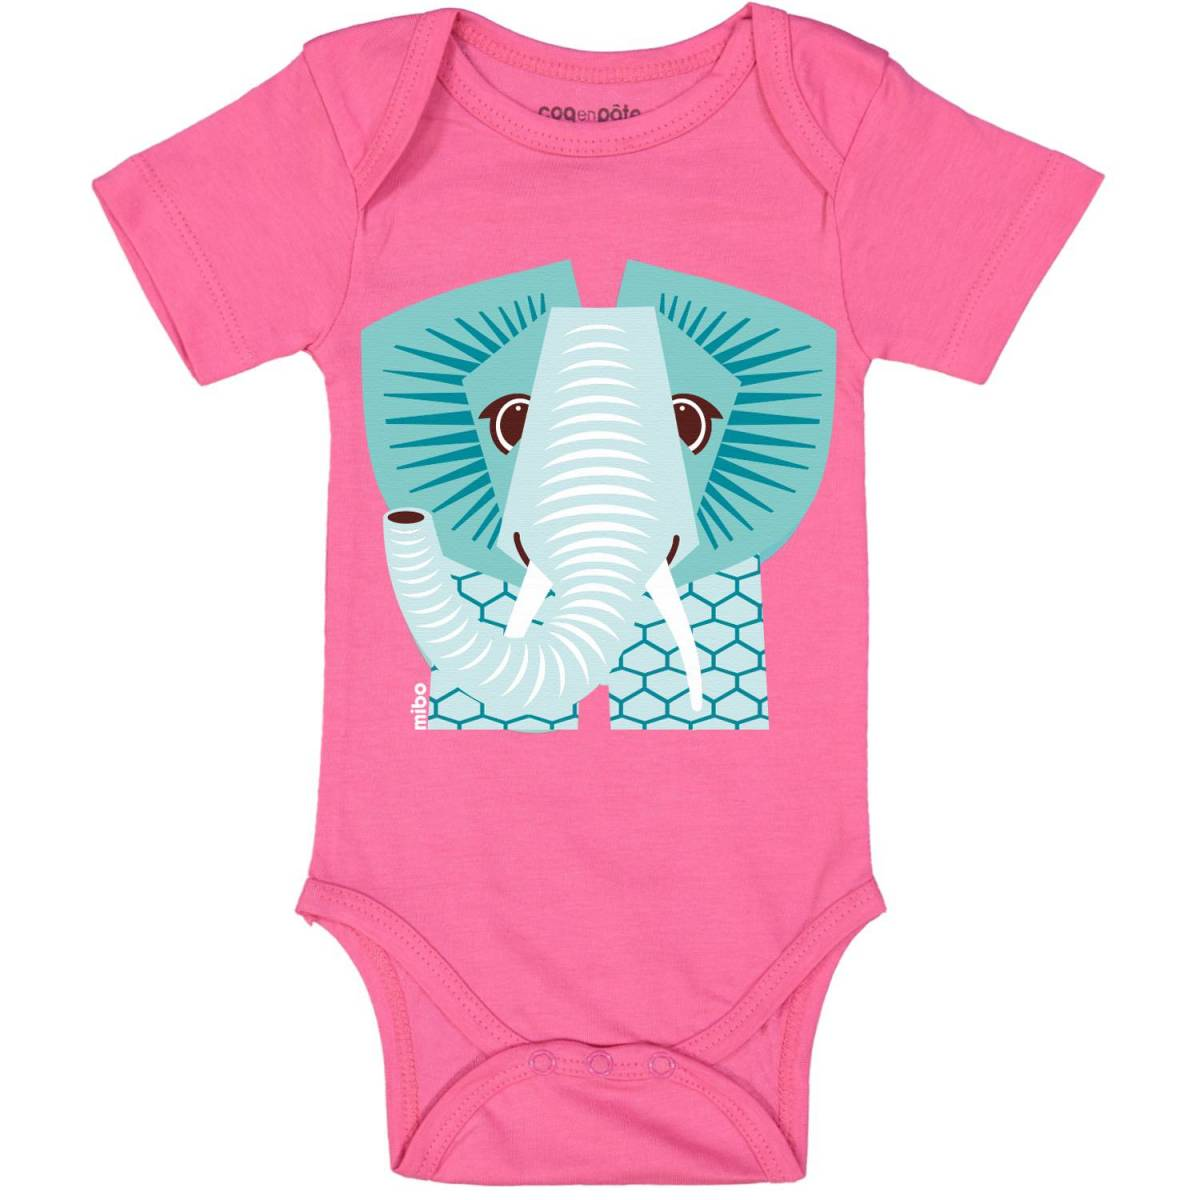 Pink elephant short sleeved body